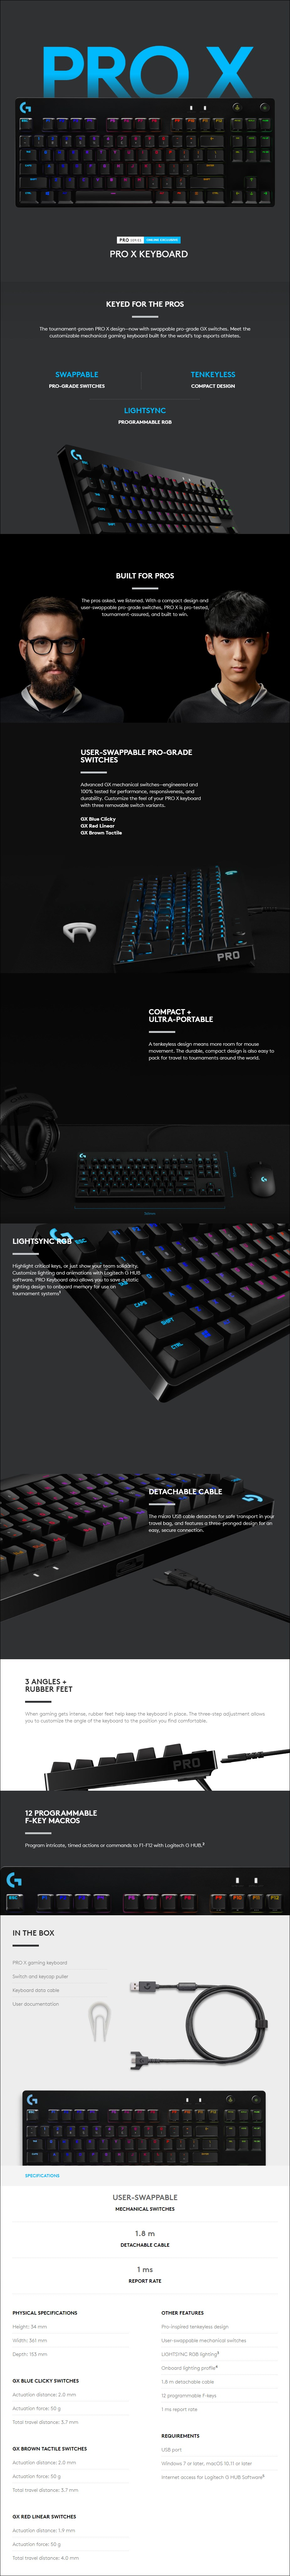 Logitech G Pro X TKL Modular Mechanical Gaming Keyboard - Overview 1